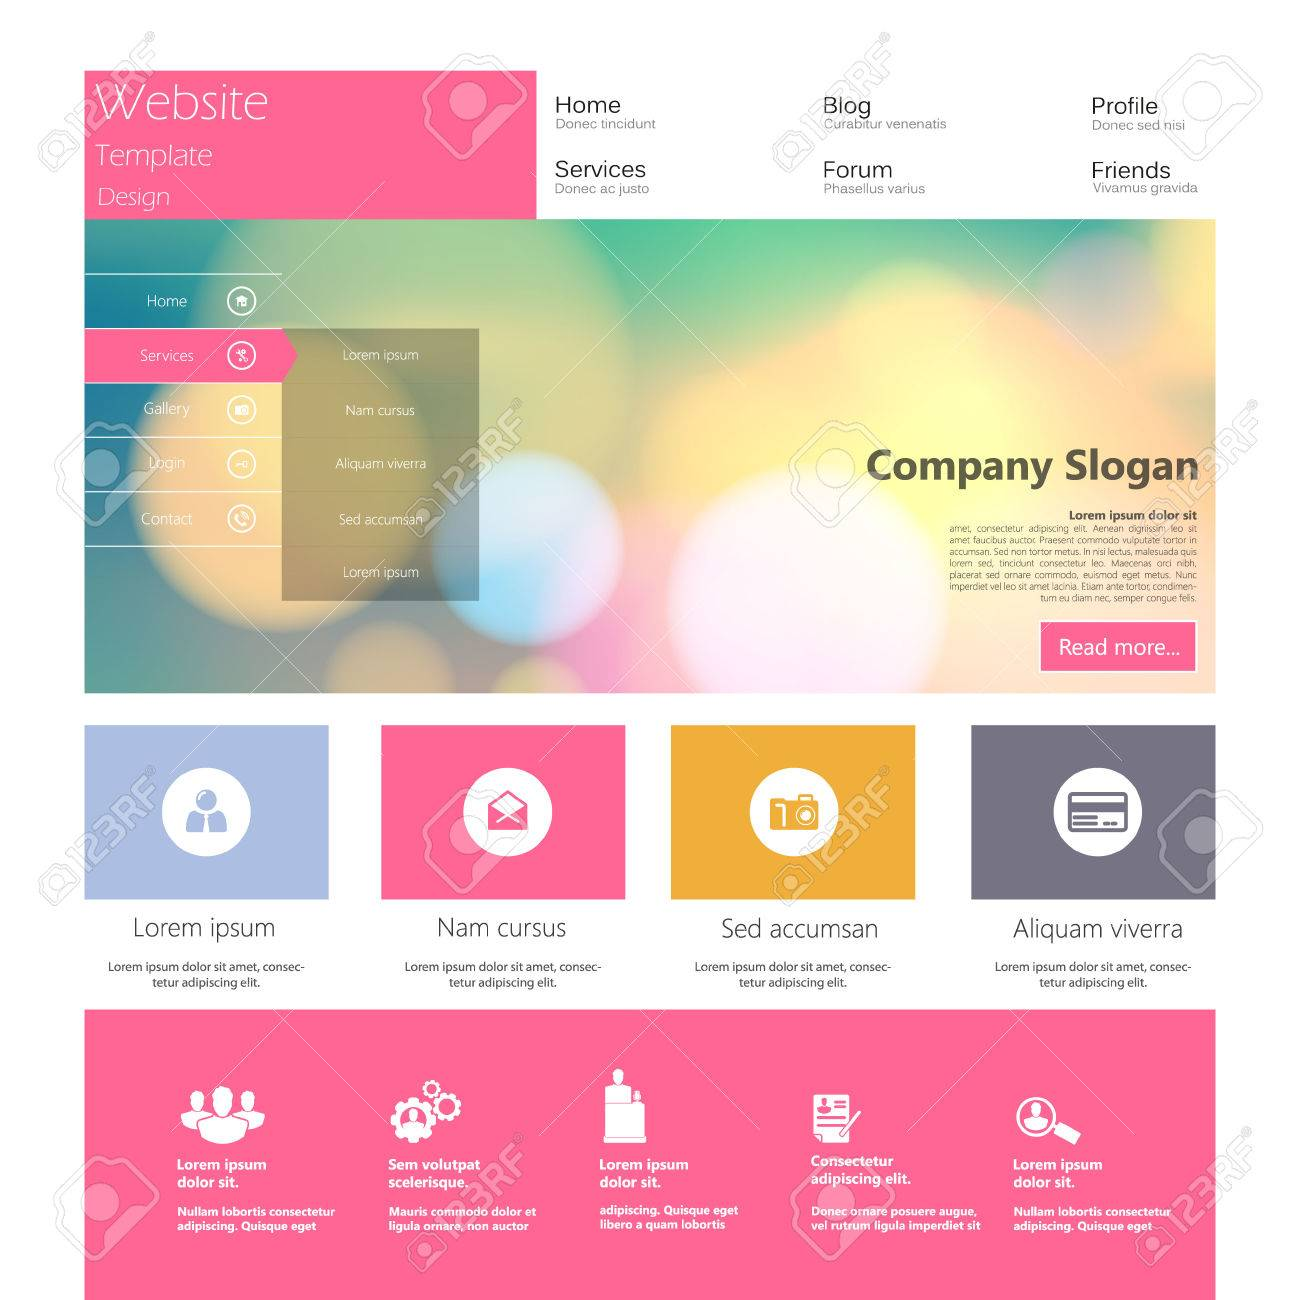 Flat Colorful Website Template Design Royalty Free Cliparts Vectors - Graphic design website templates